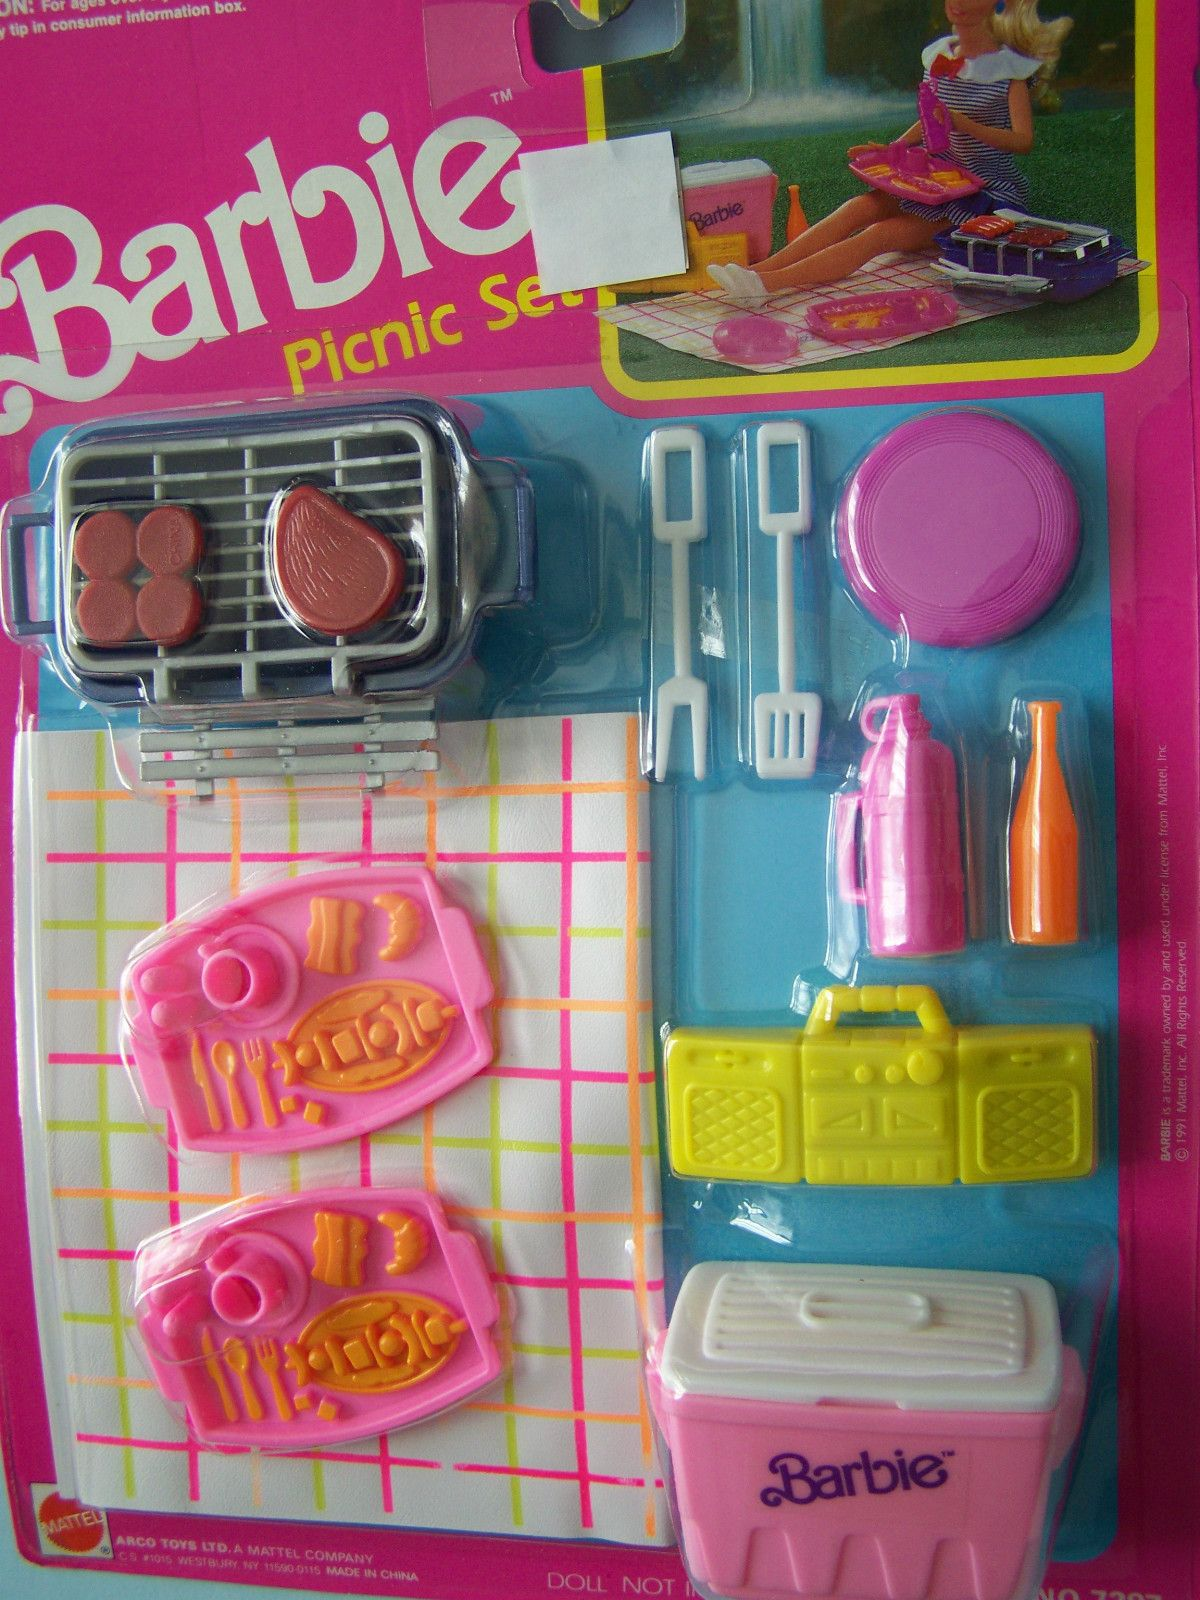 Apologise, vintage barbie products topic